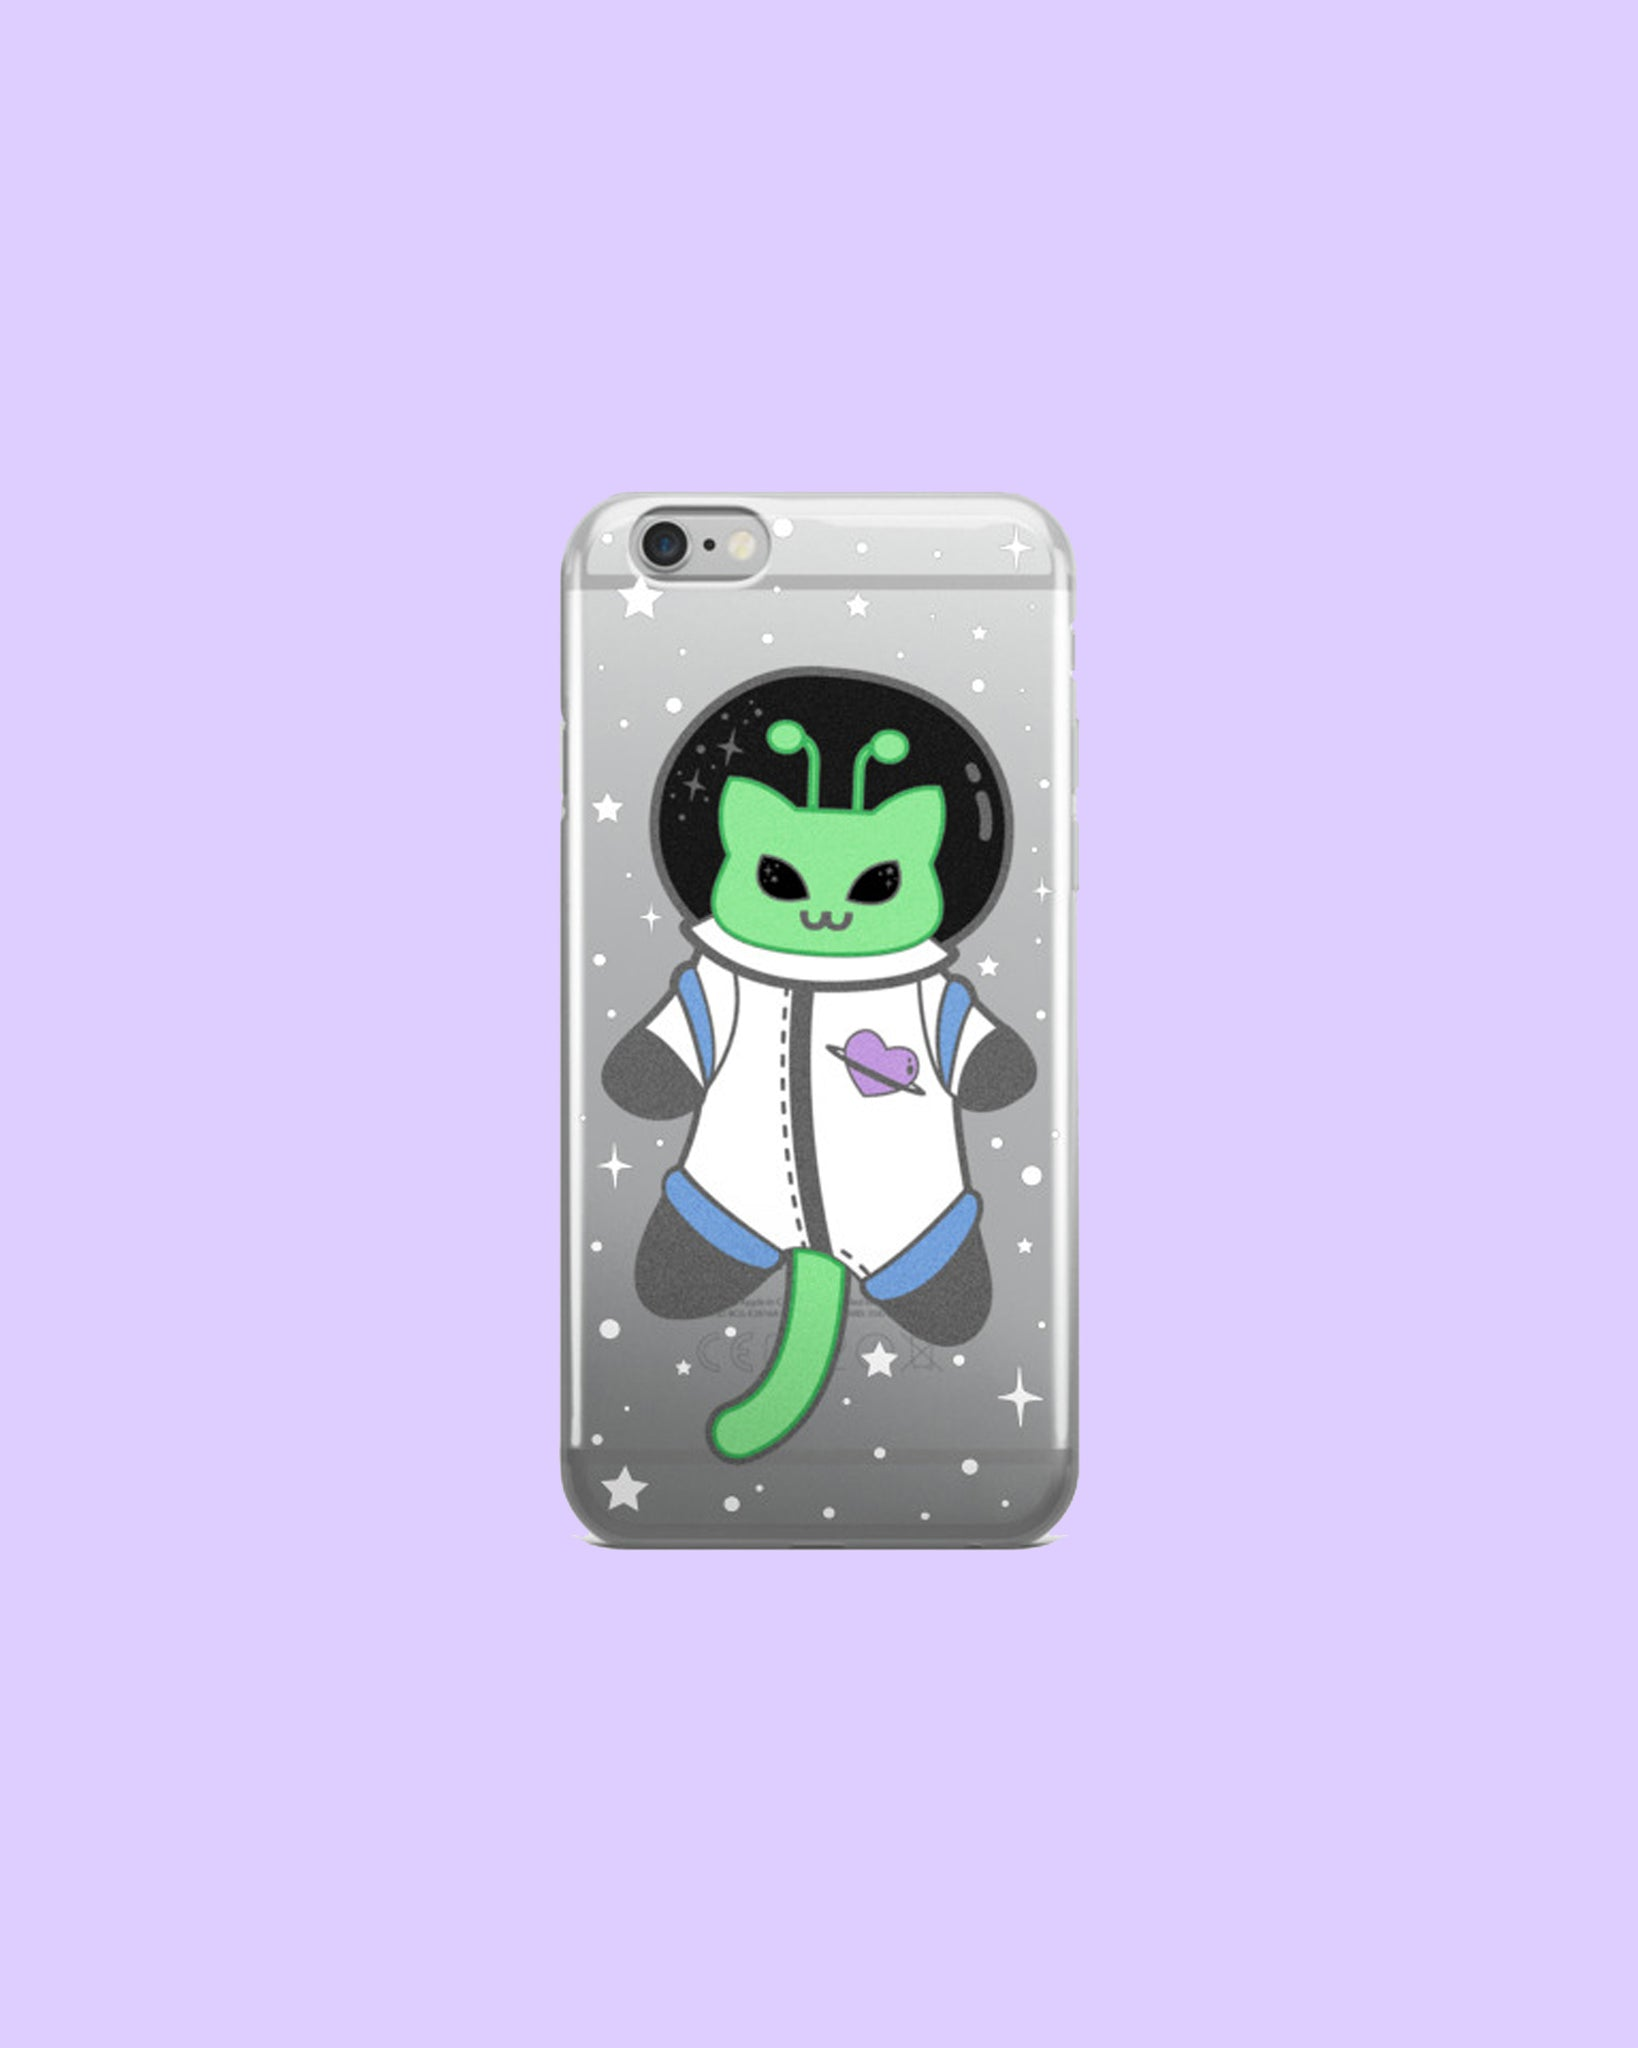 Martian Kitty From Space - Clear Plastic Phone Case for iPhones